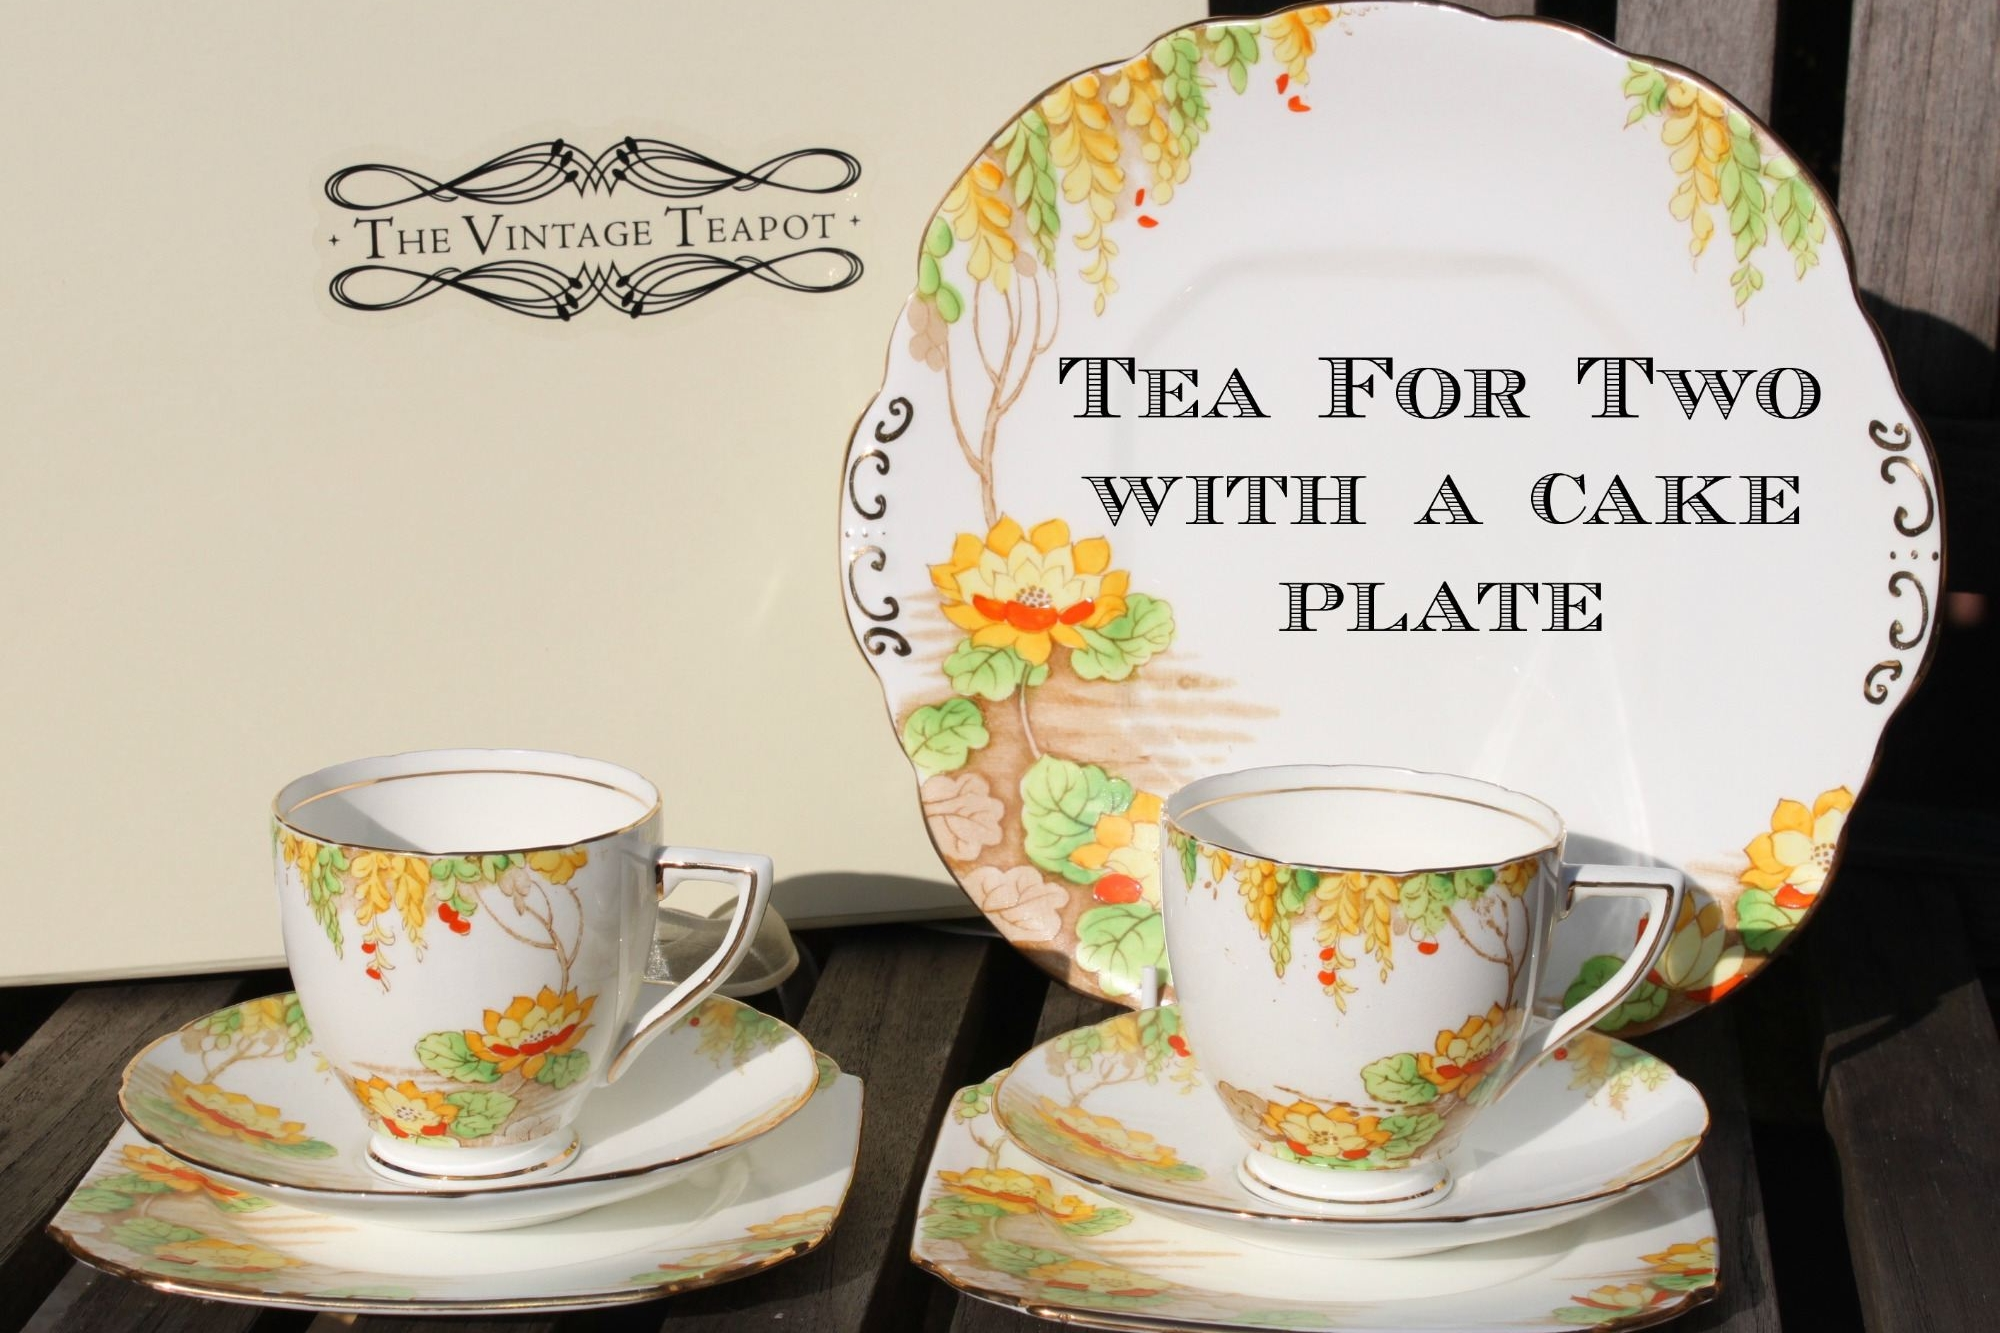 Tea for Two with a cake plate